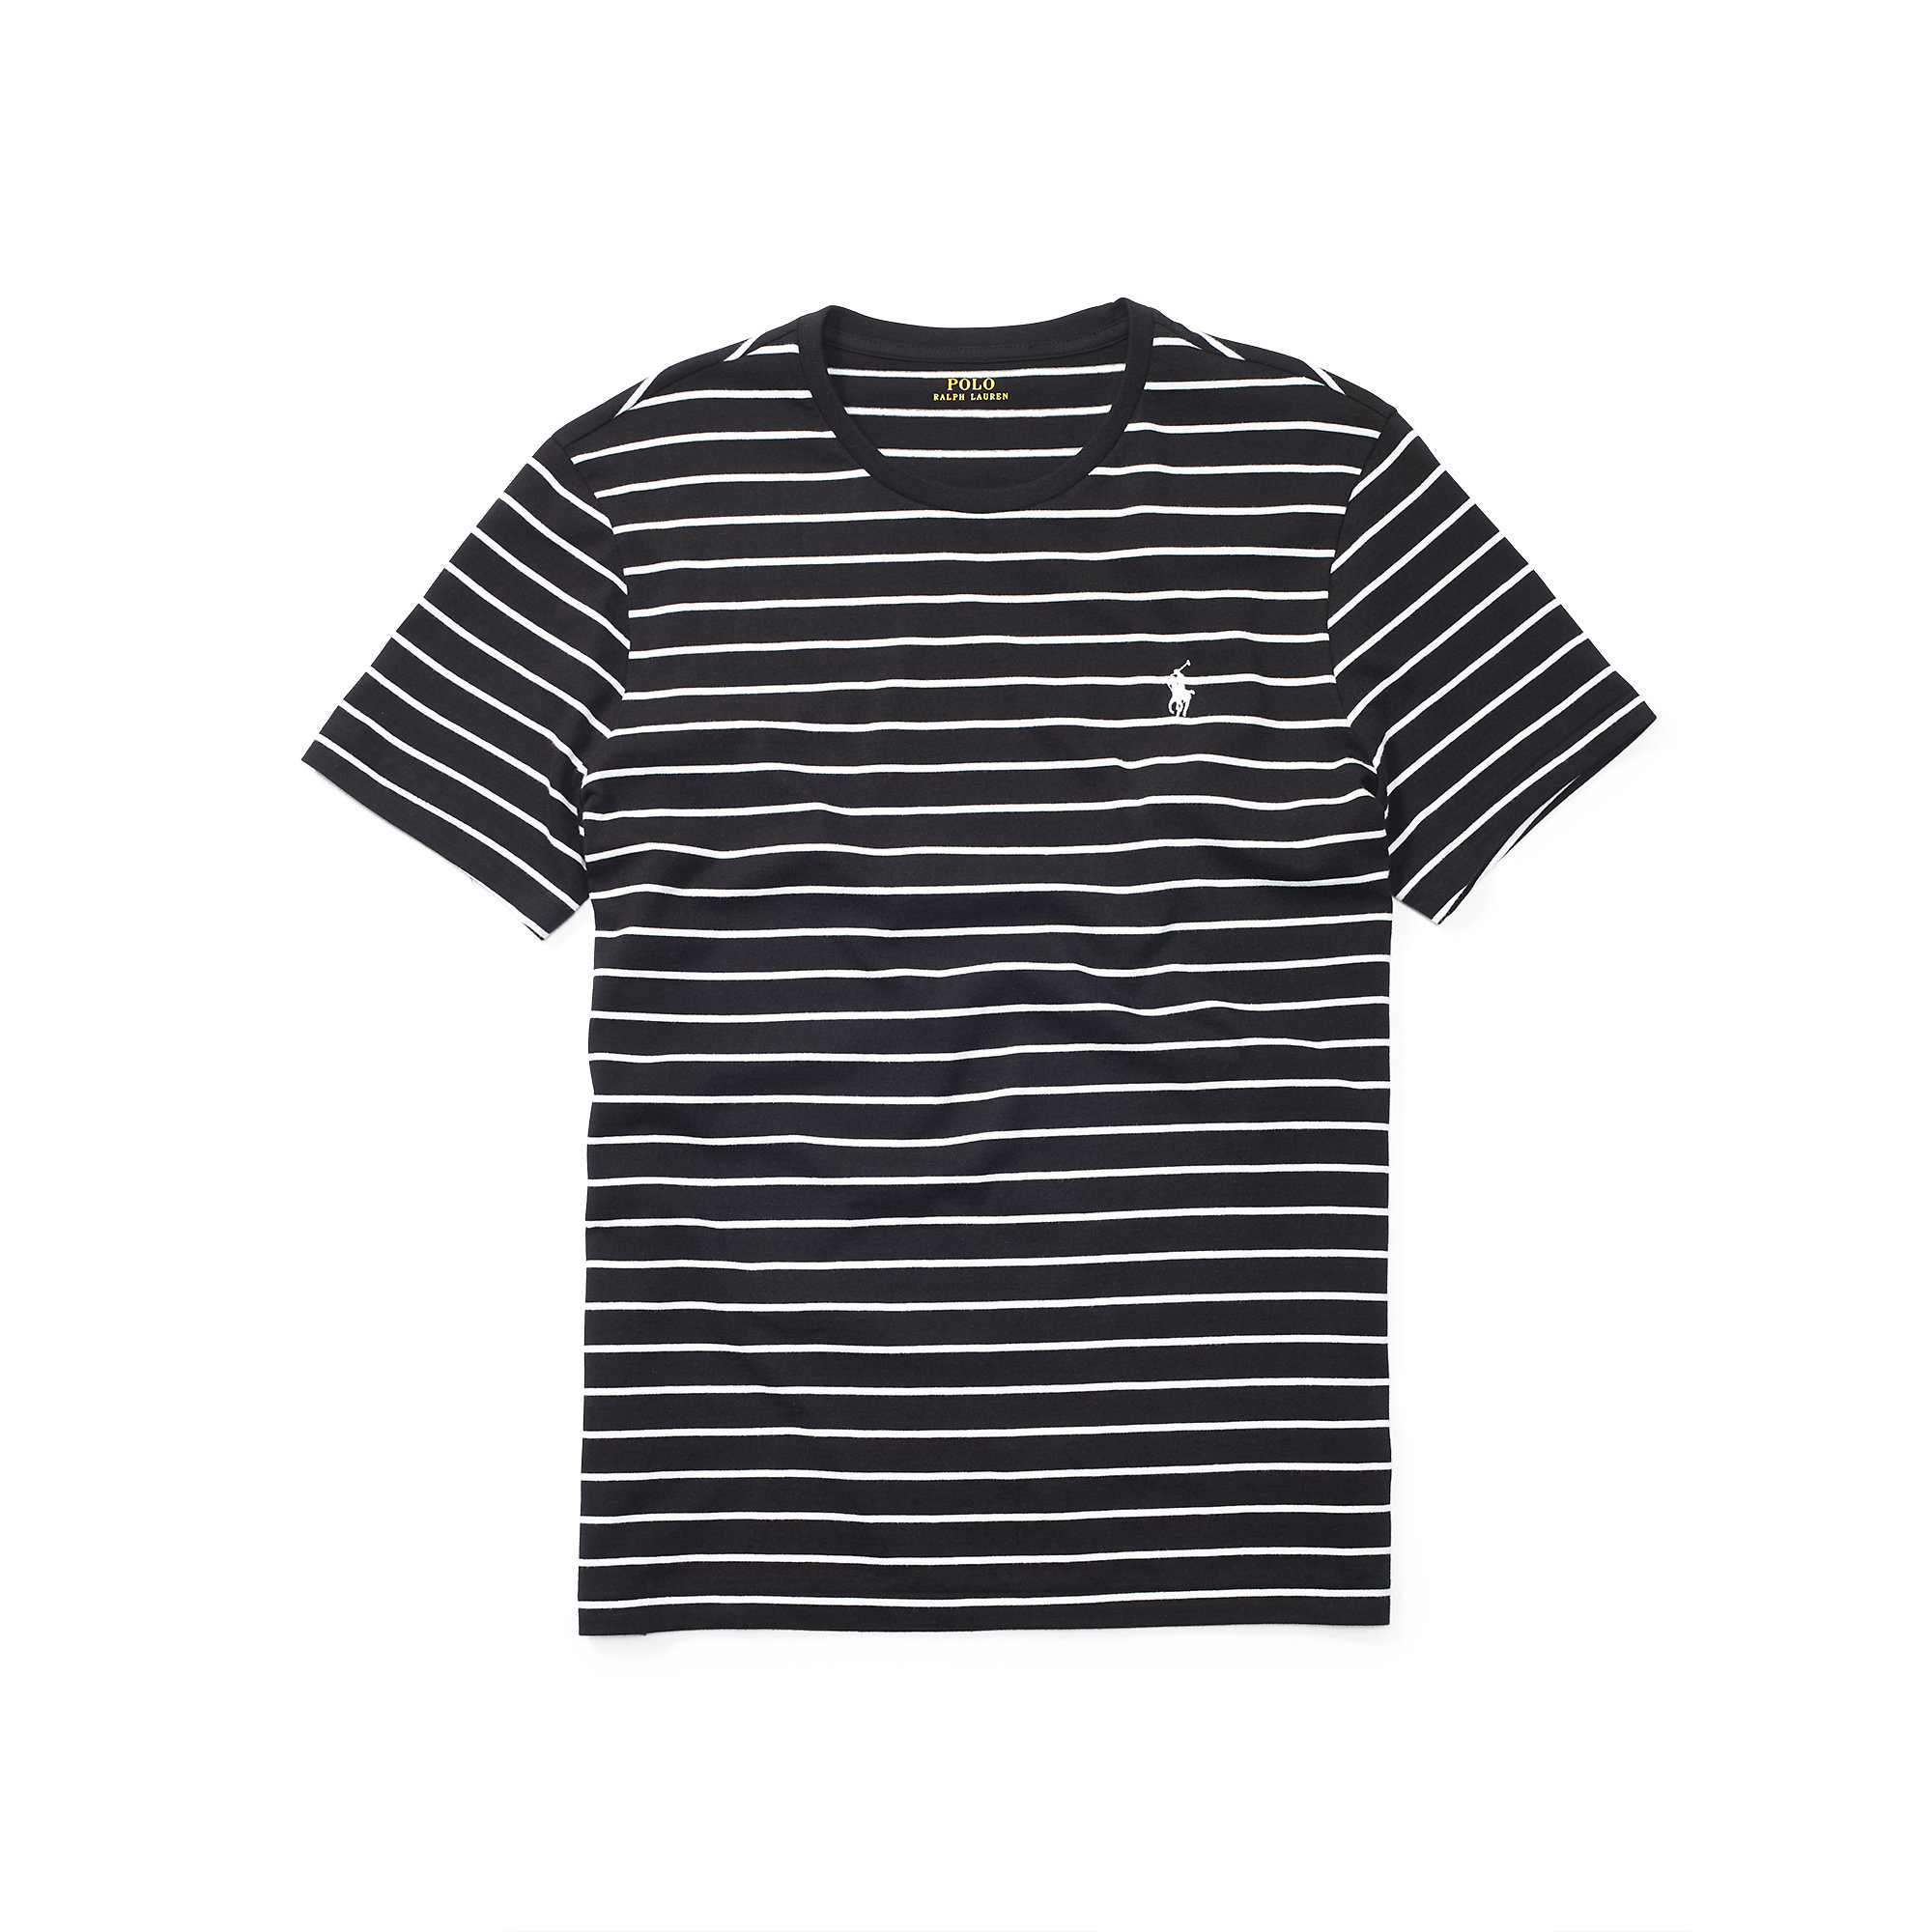 5cdfce6b low price lyst polo ralph lauren striped cotton jersey t shirt in black for  men 1fc84